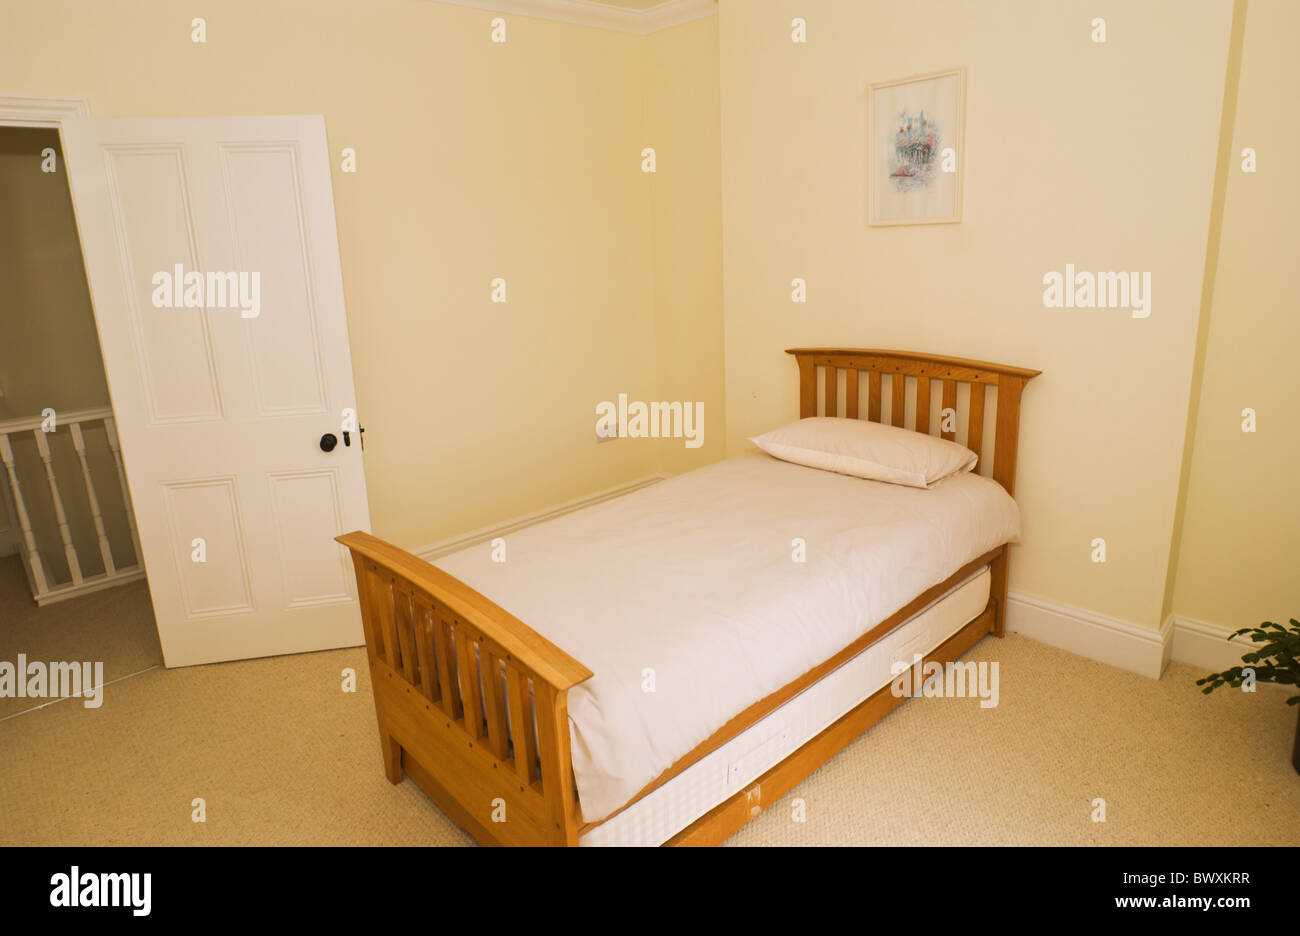 House Bed Frame Uk Bedroom With Single Bed Of Renovated Edwardian Detached House In